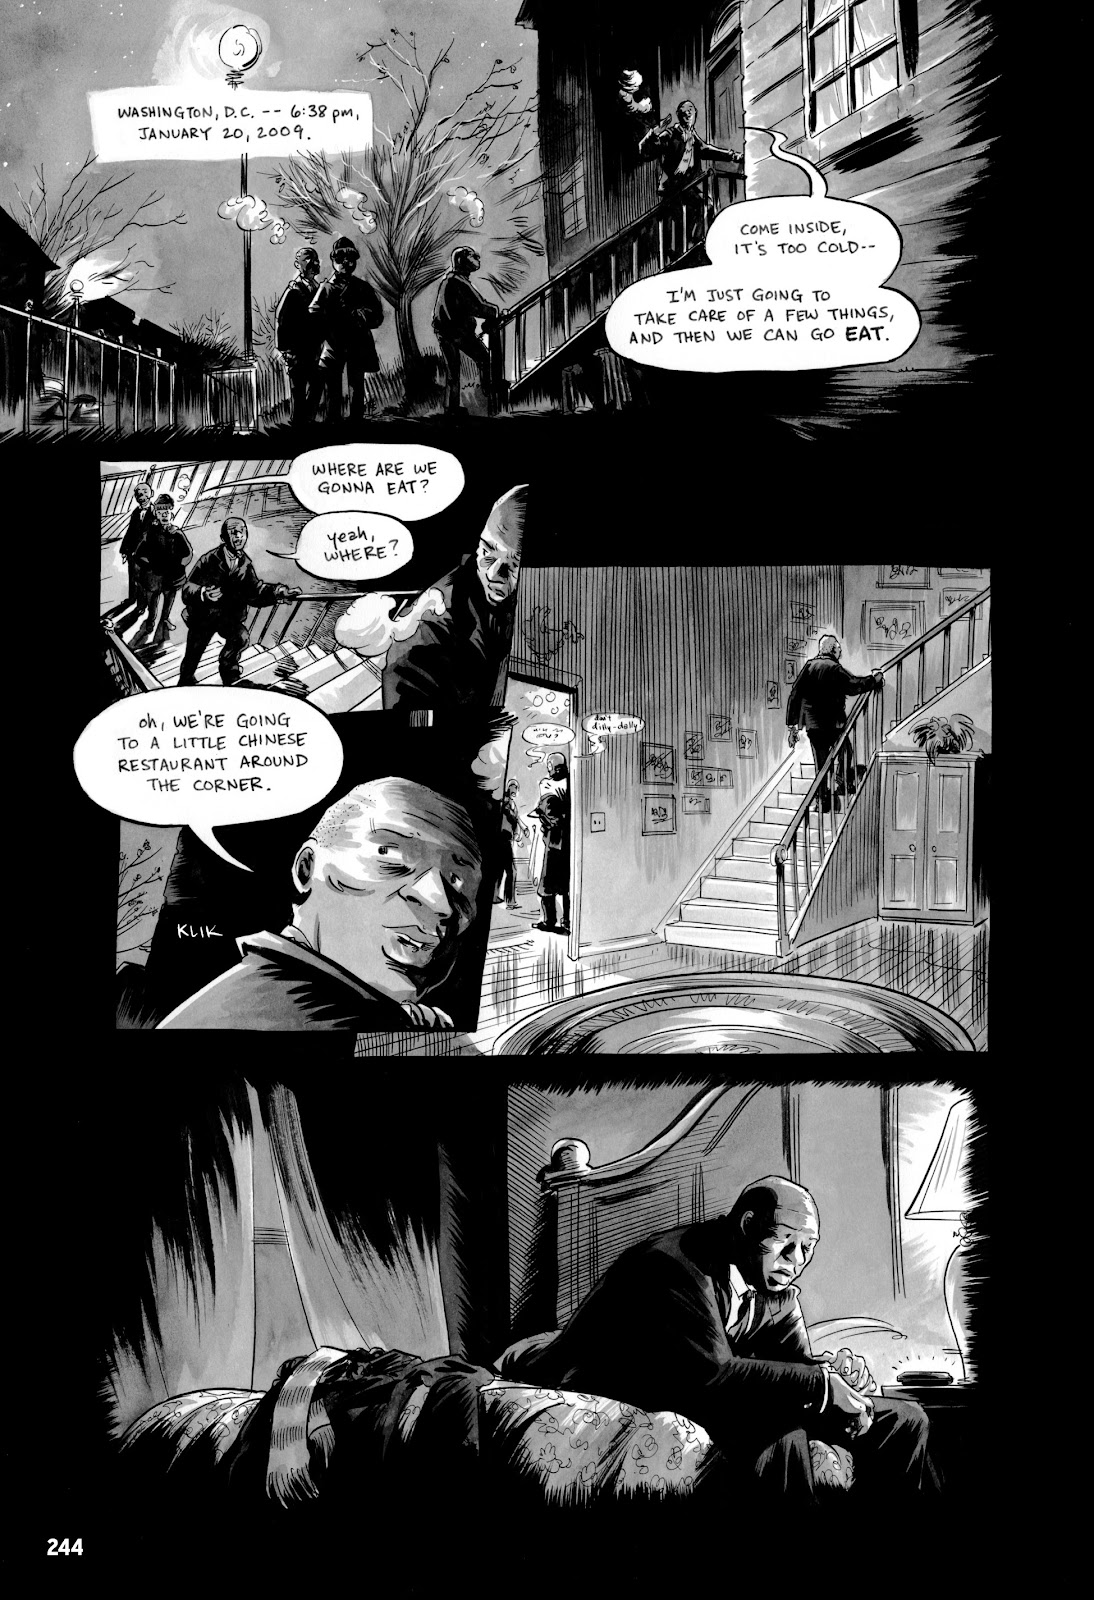 March 3 Page 238